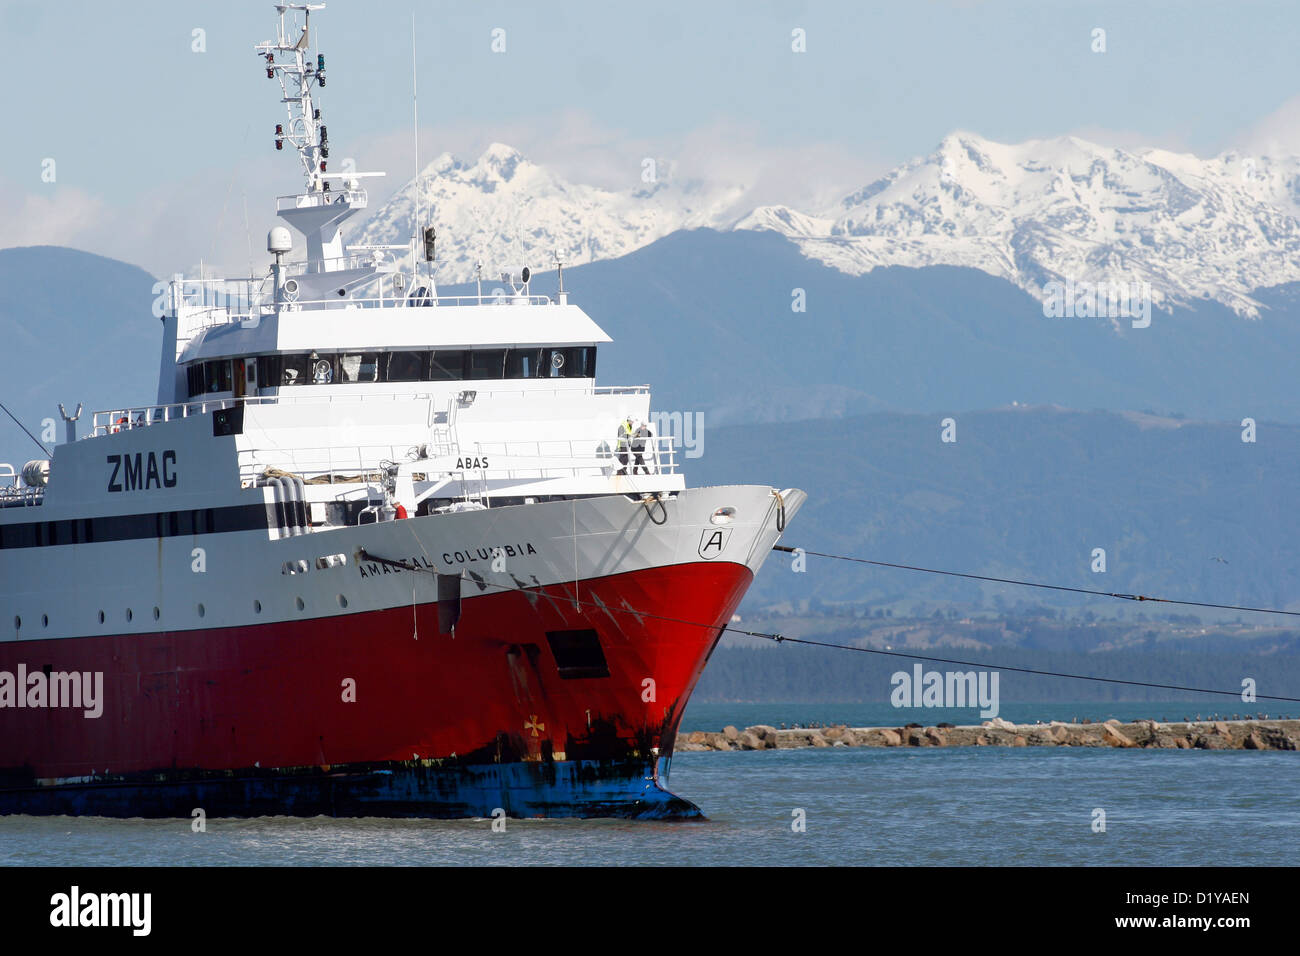 Amaltal Columbia under tow entering Port Nelson following a damaging fire - Stock Image